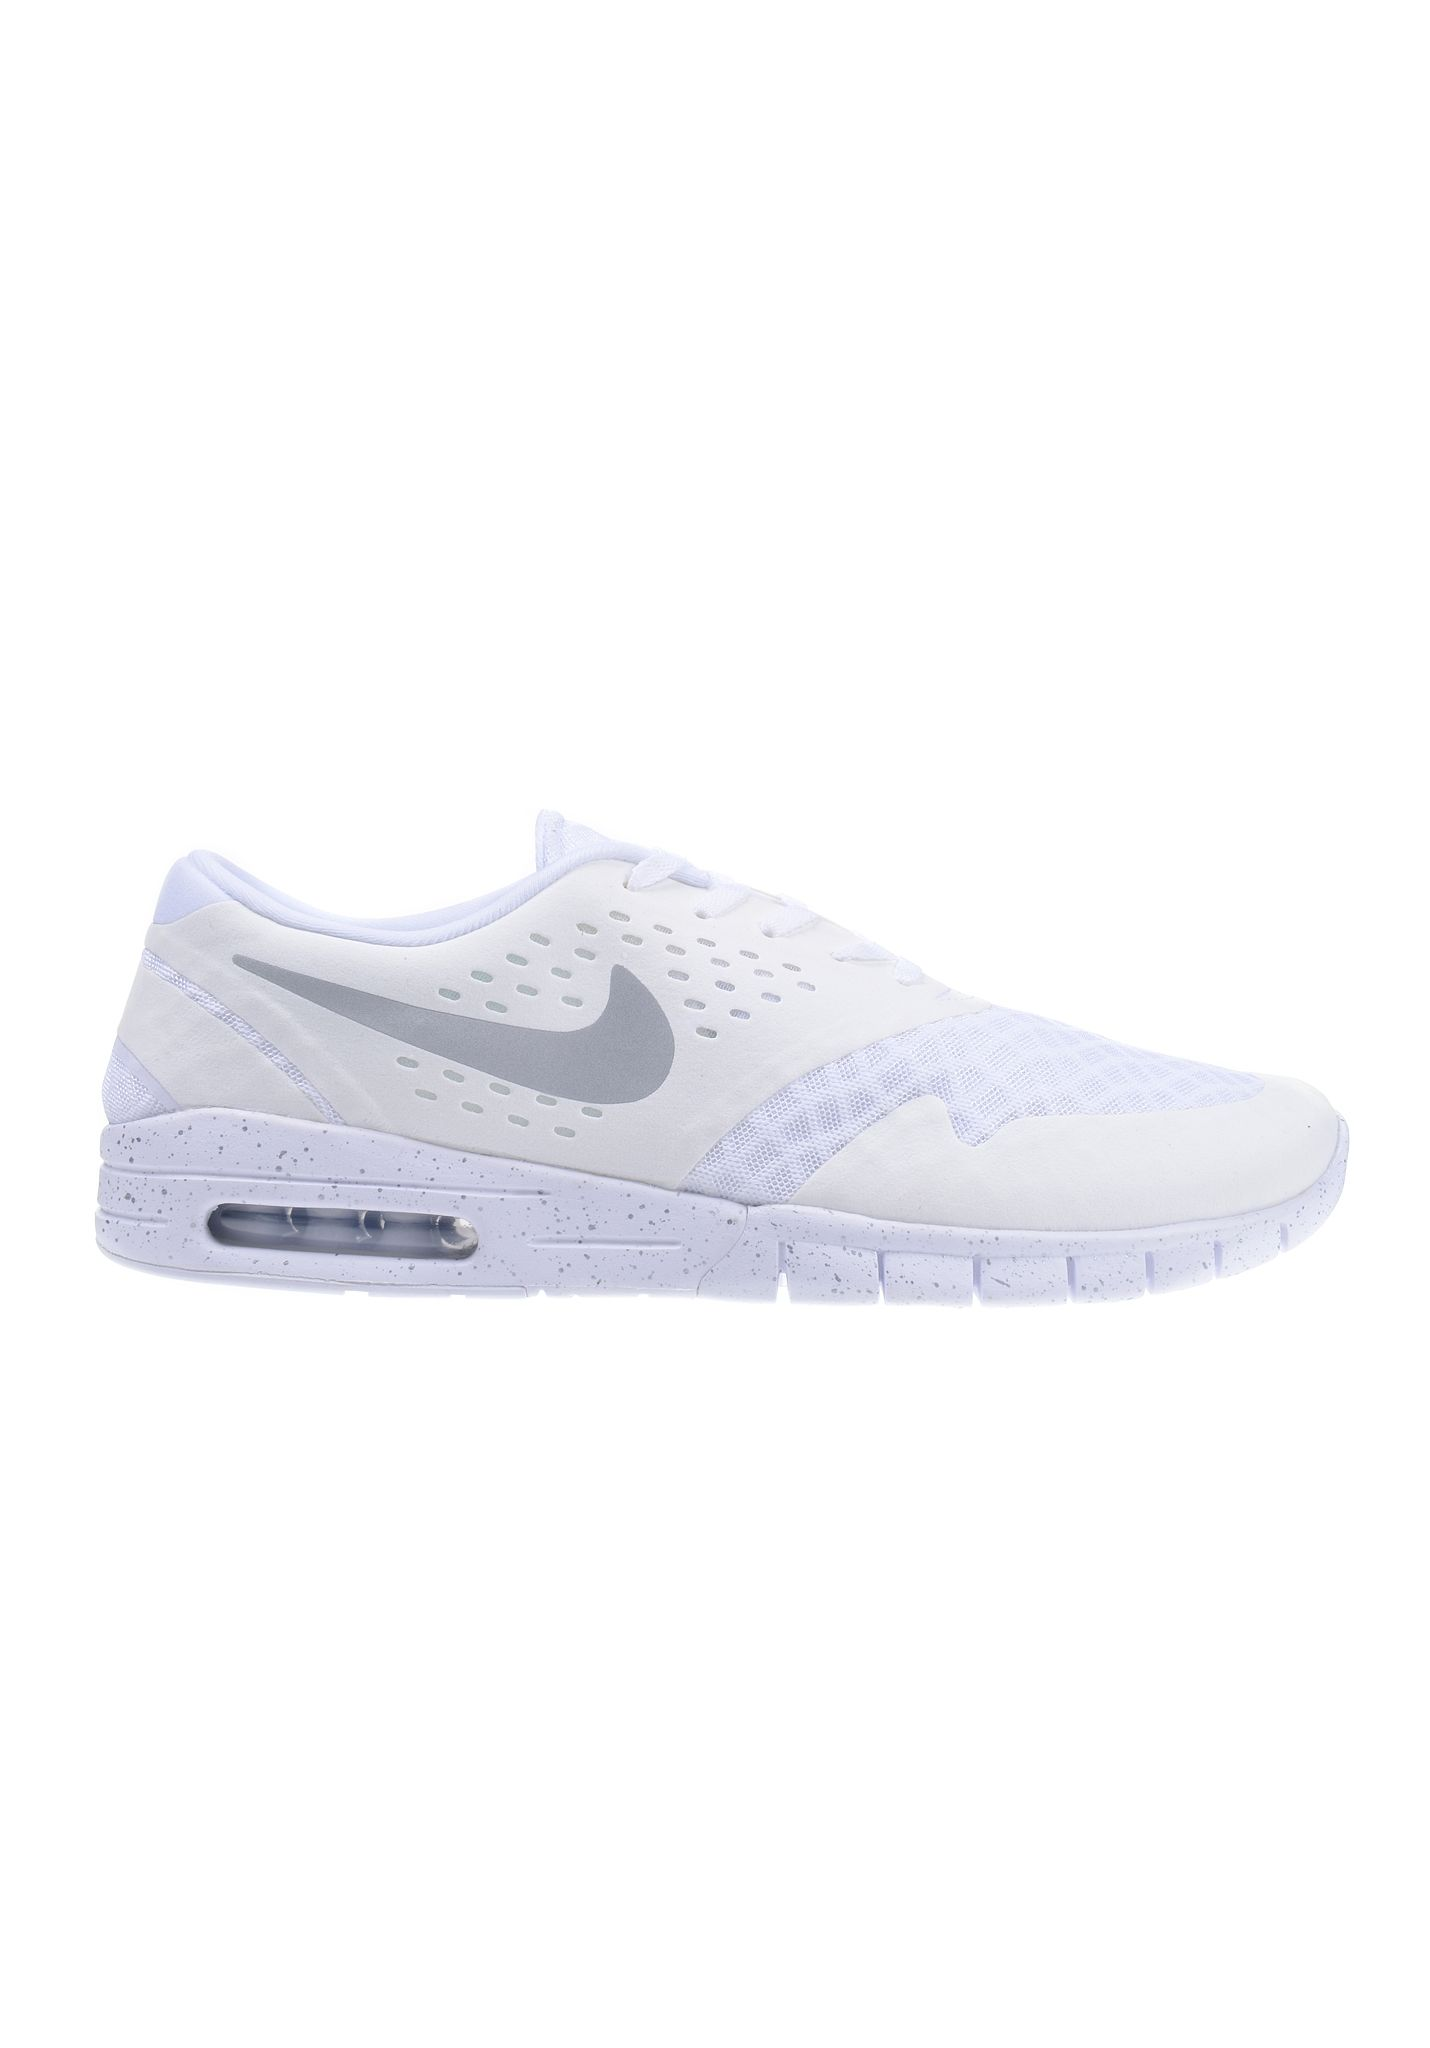 new arrivals 8e47c 3db64 NIKE SB Eric Koston 2 Max - Zapatillas para Hombres - Blanco - Planet Sports